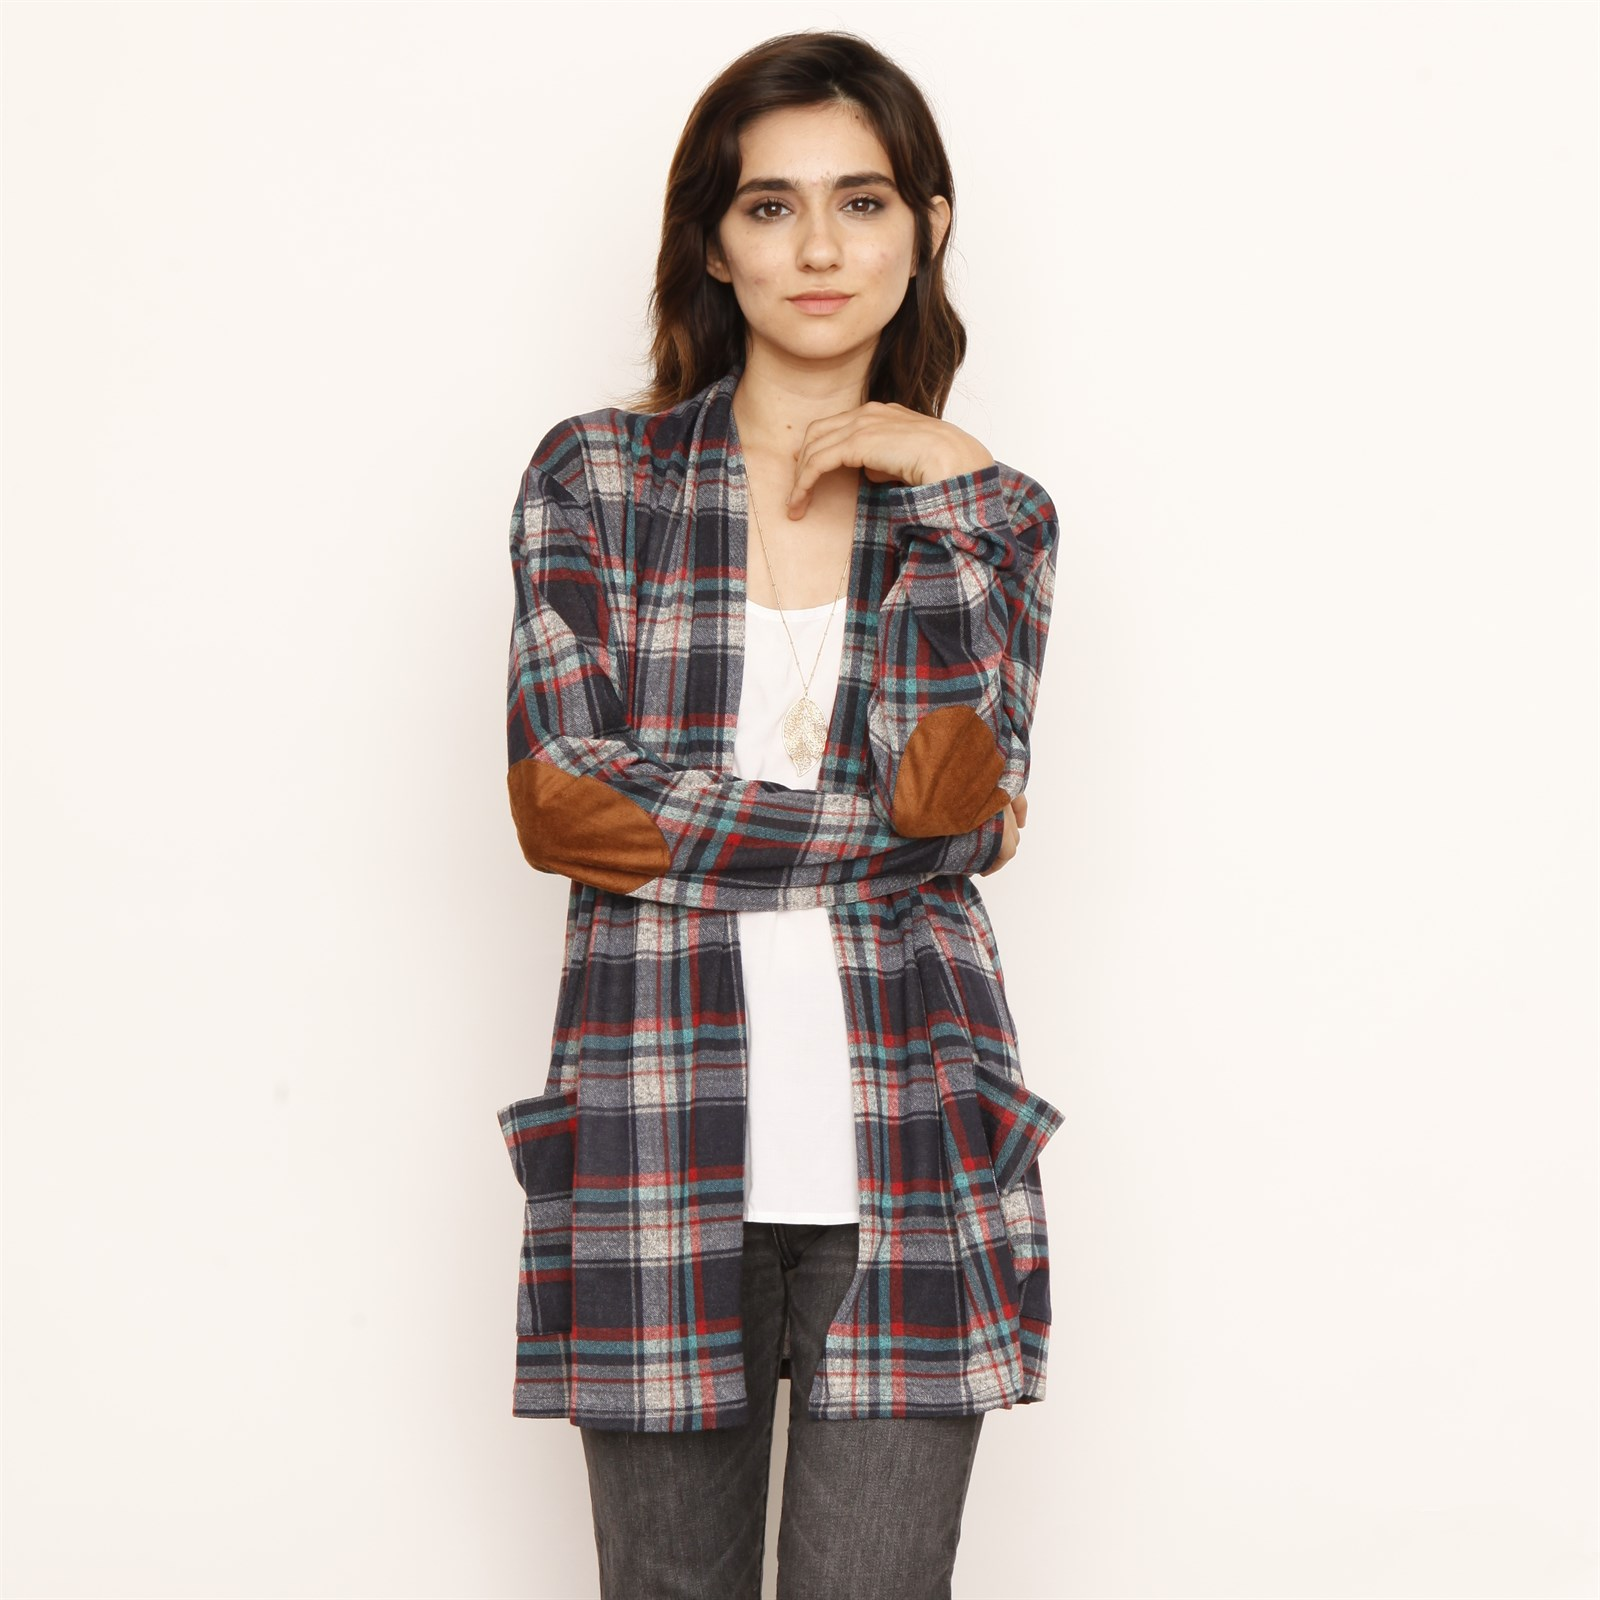 Plaid Cardigan with Pocket Only $15.99 w/ Free Shipping